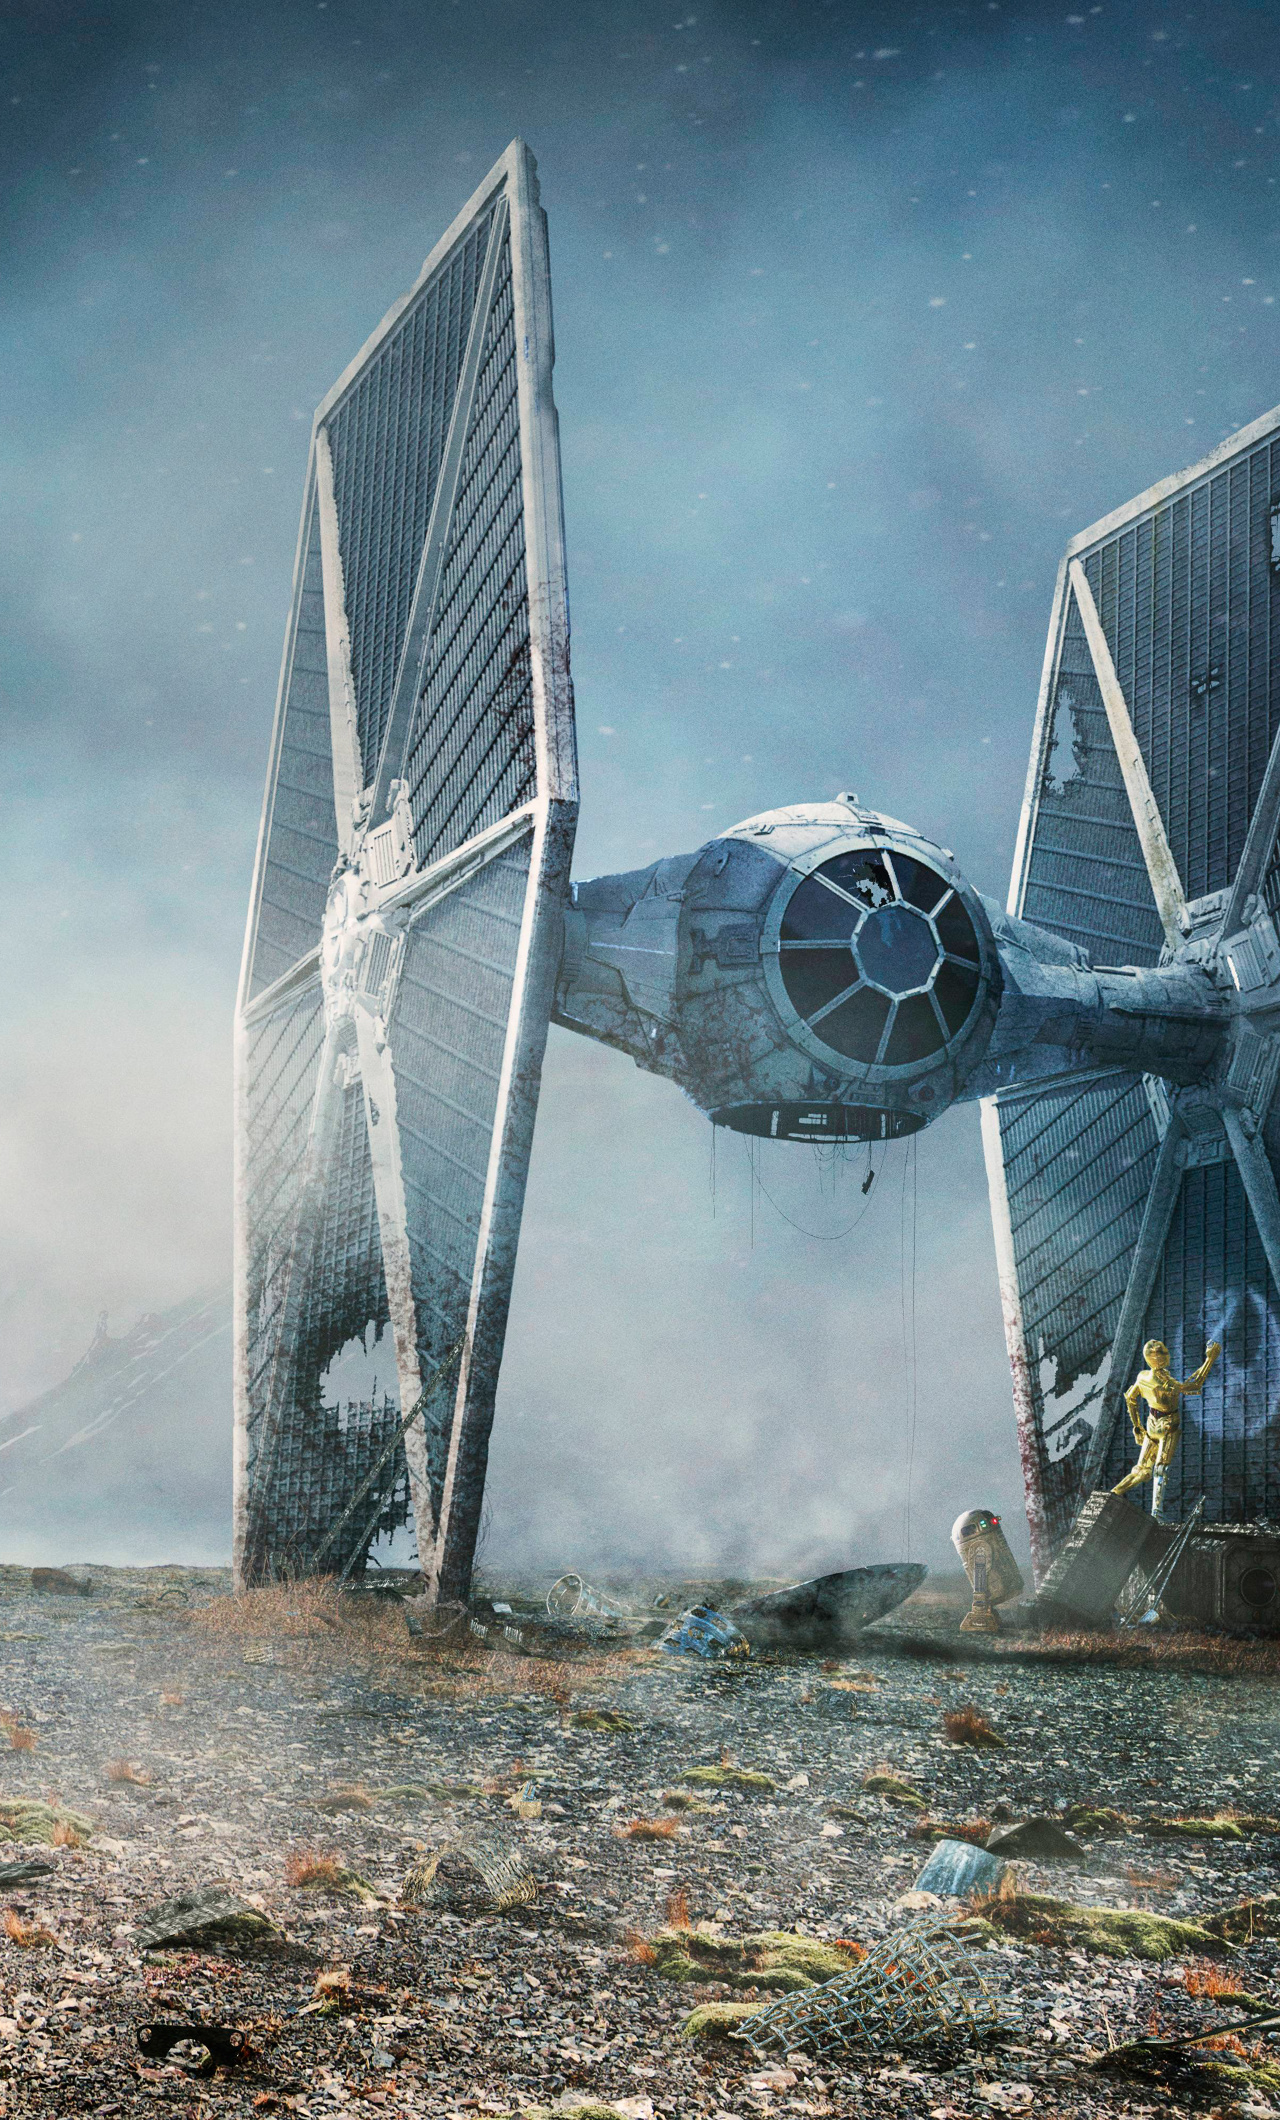 1280x2120 Tie Fighter Star Wars Iphone 6 Plus Wallpaper Hd Movies 4k Wallpapers Images Photos And Background